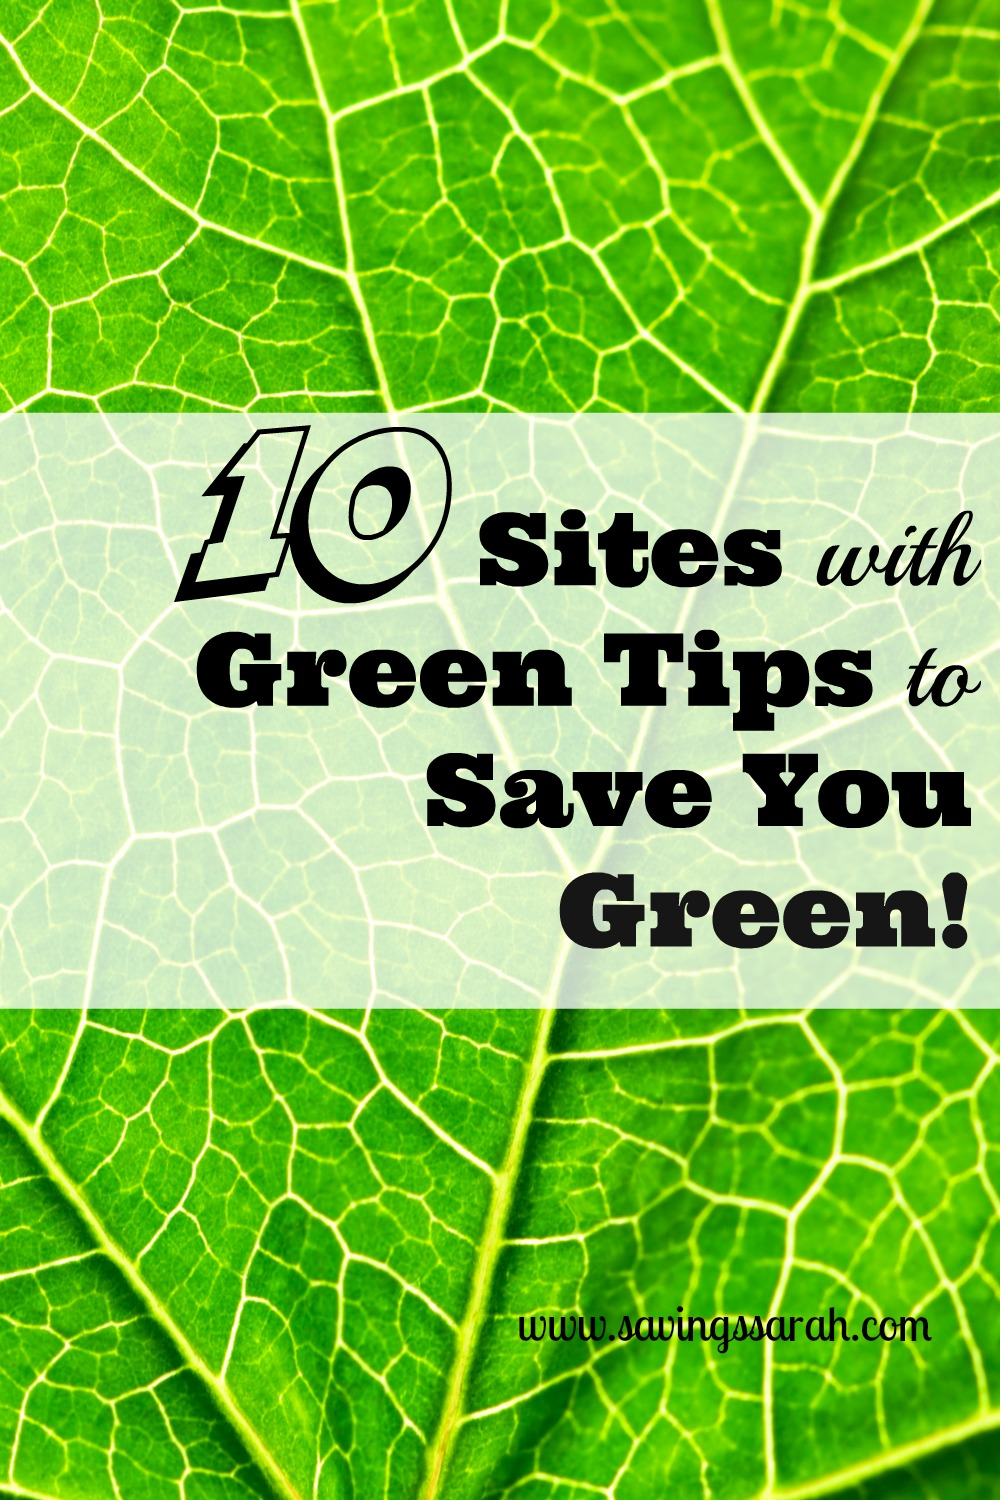 10 Sites with Green Tips to Save You Green!